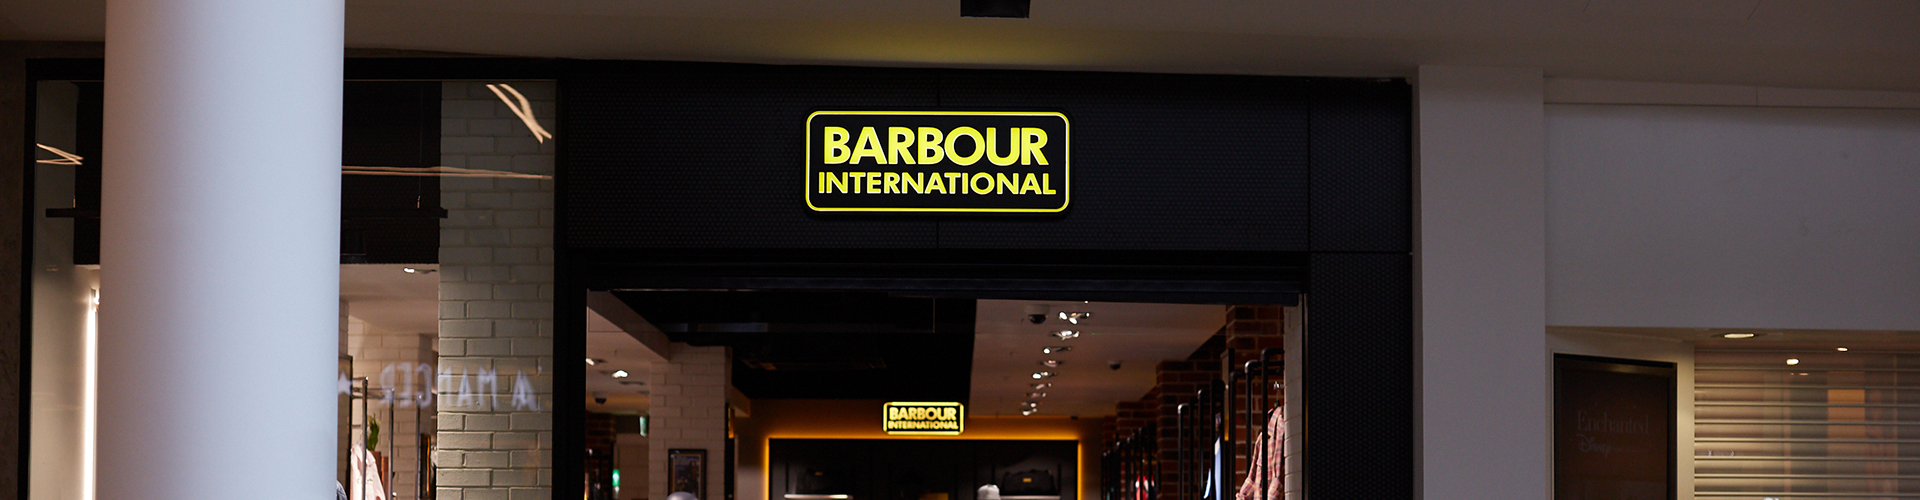 barbour meadowhall